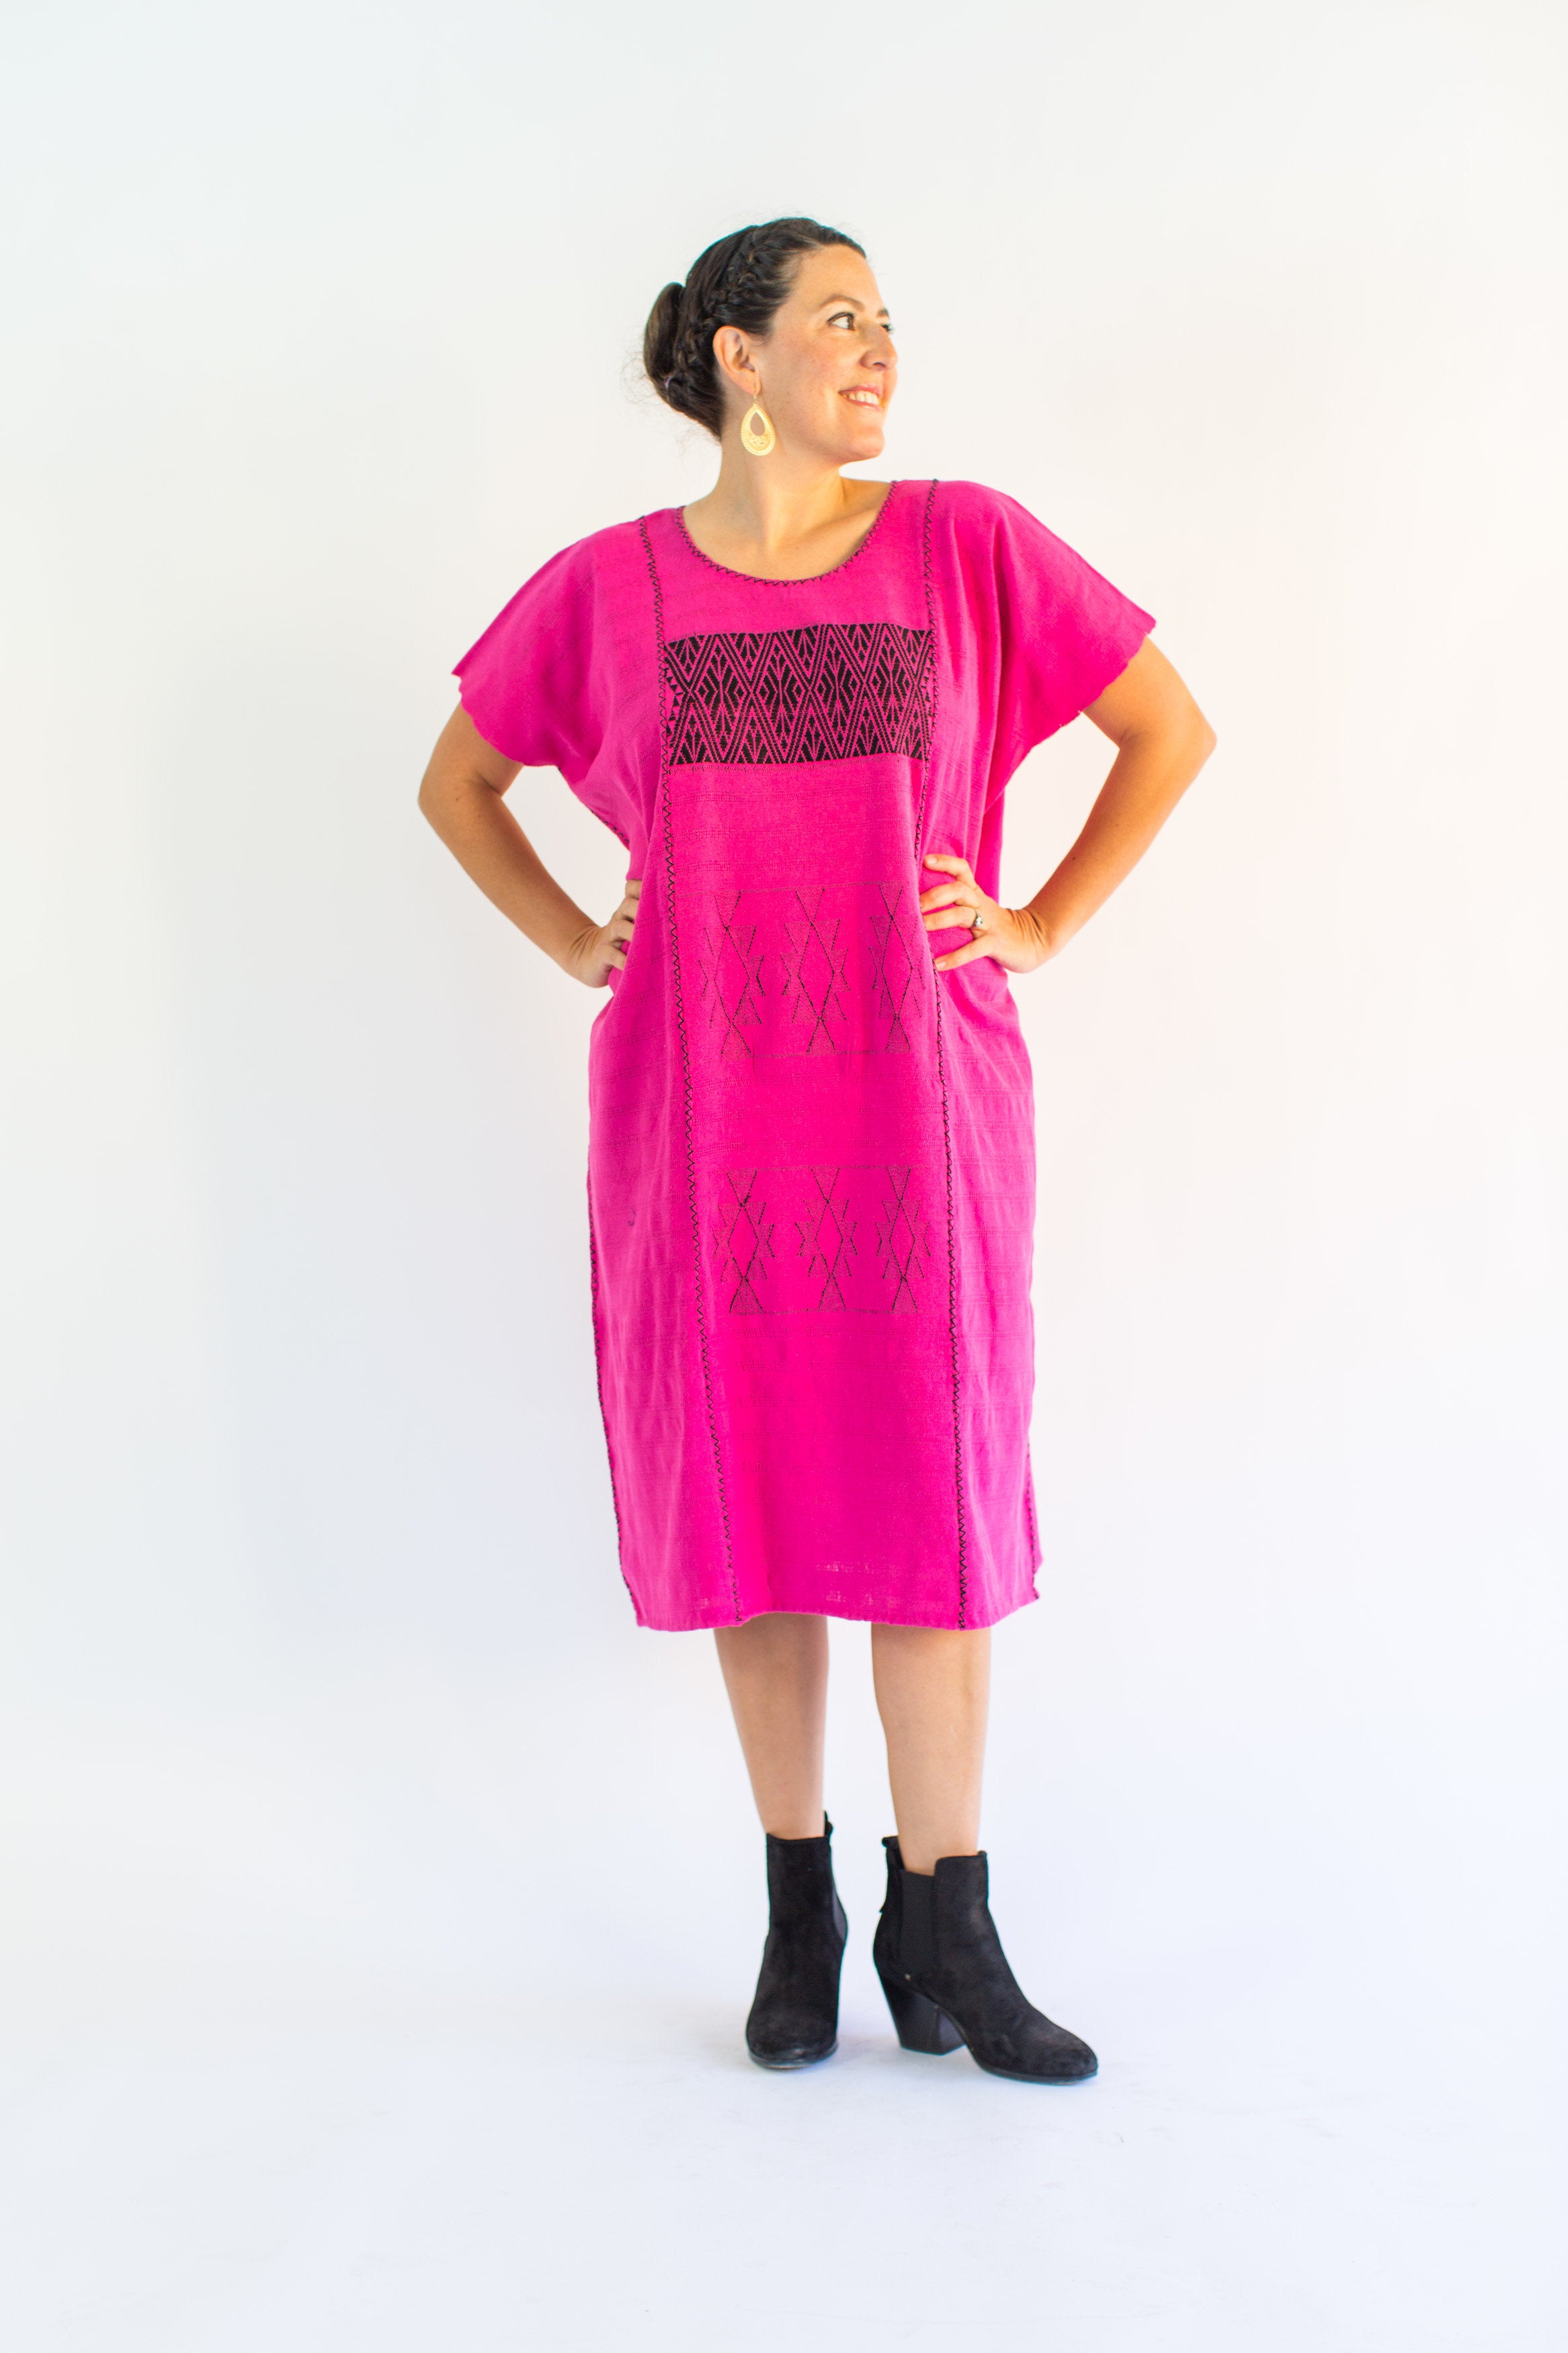 DIANA DRESS / HOT PINK WITH BLACK